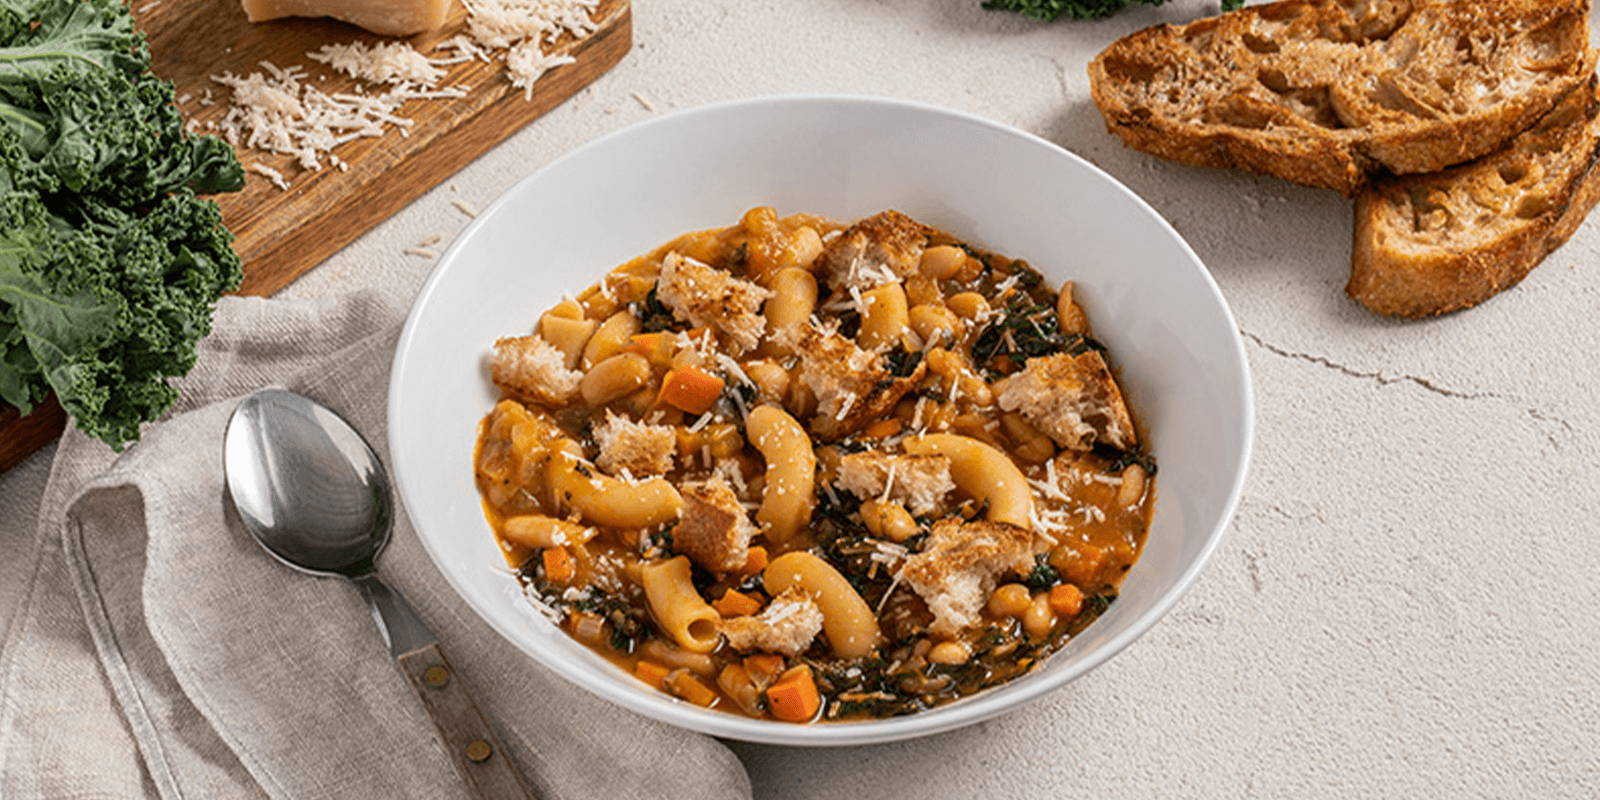 Added alt tag: A bowl of ribollita soup filled with ZENB Elbows Pasta garnished with cheese.